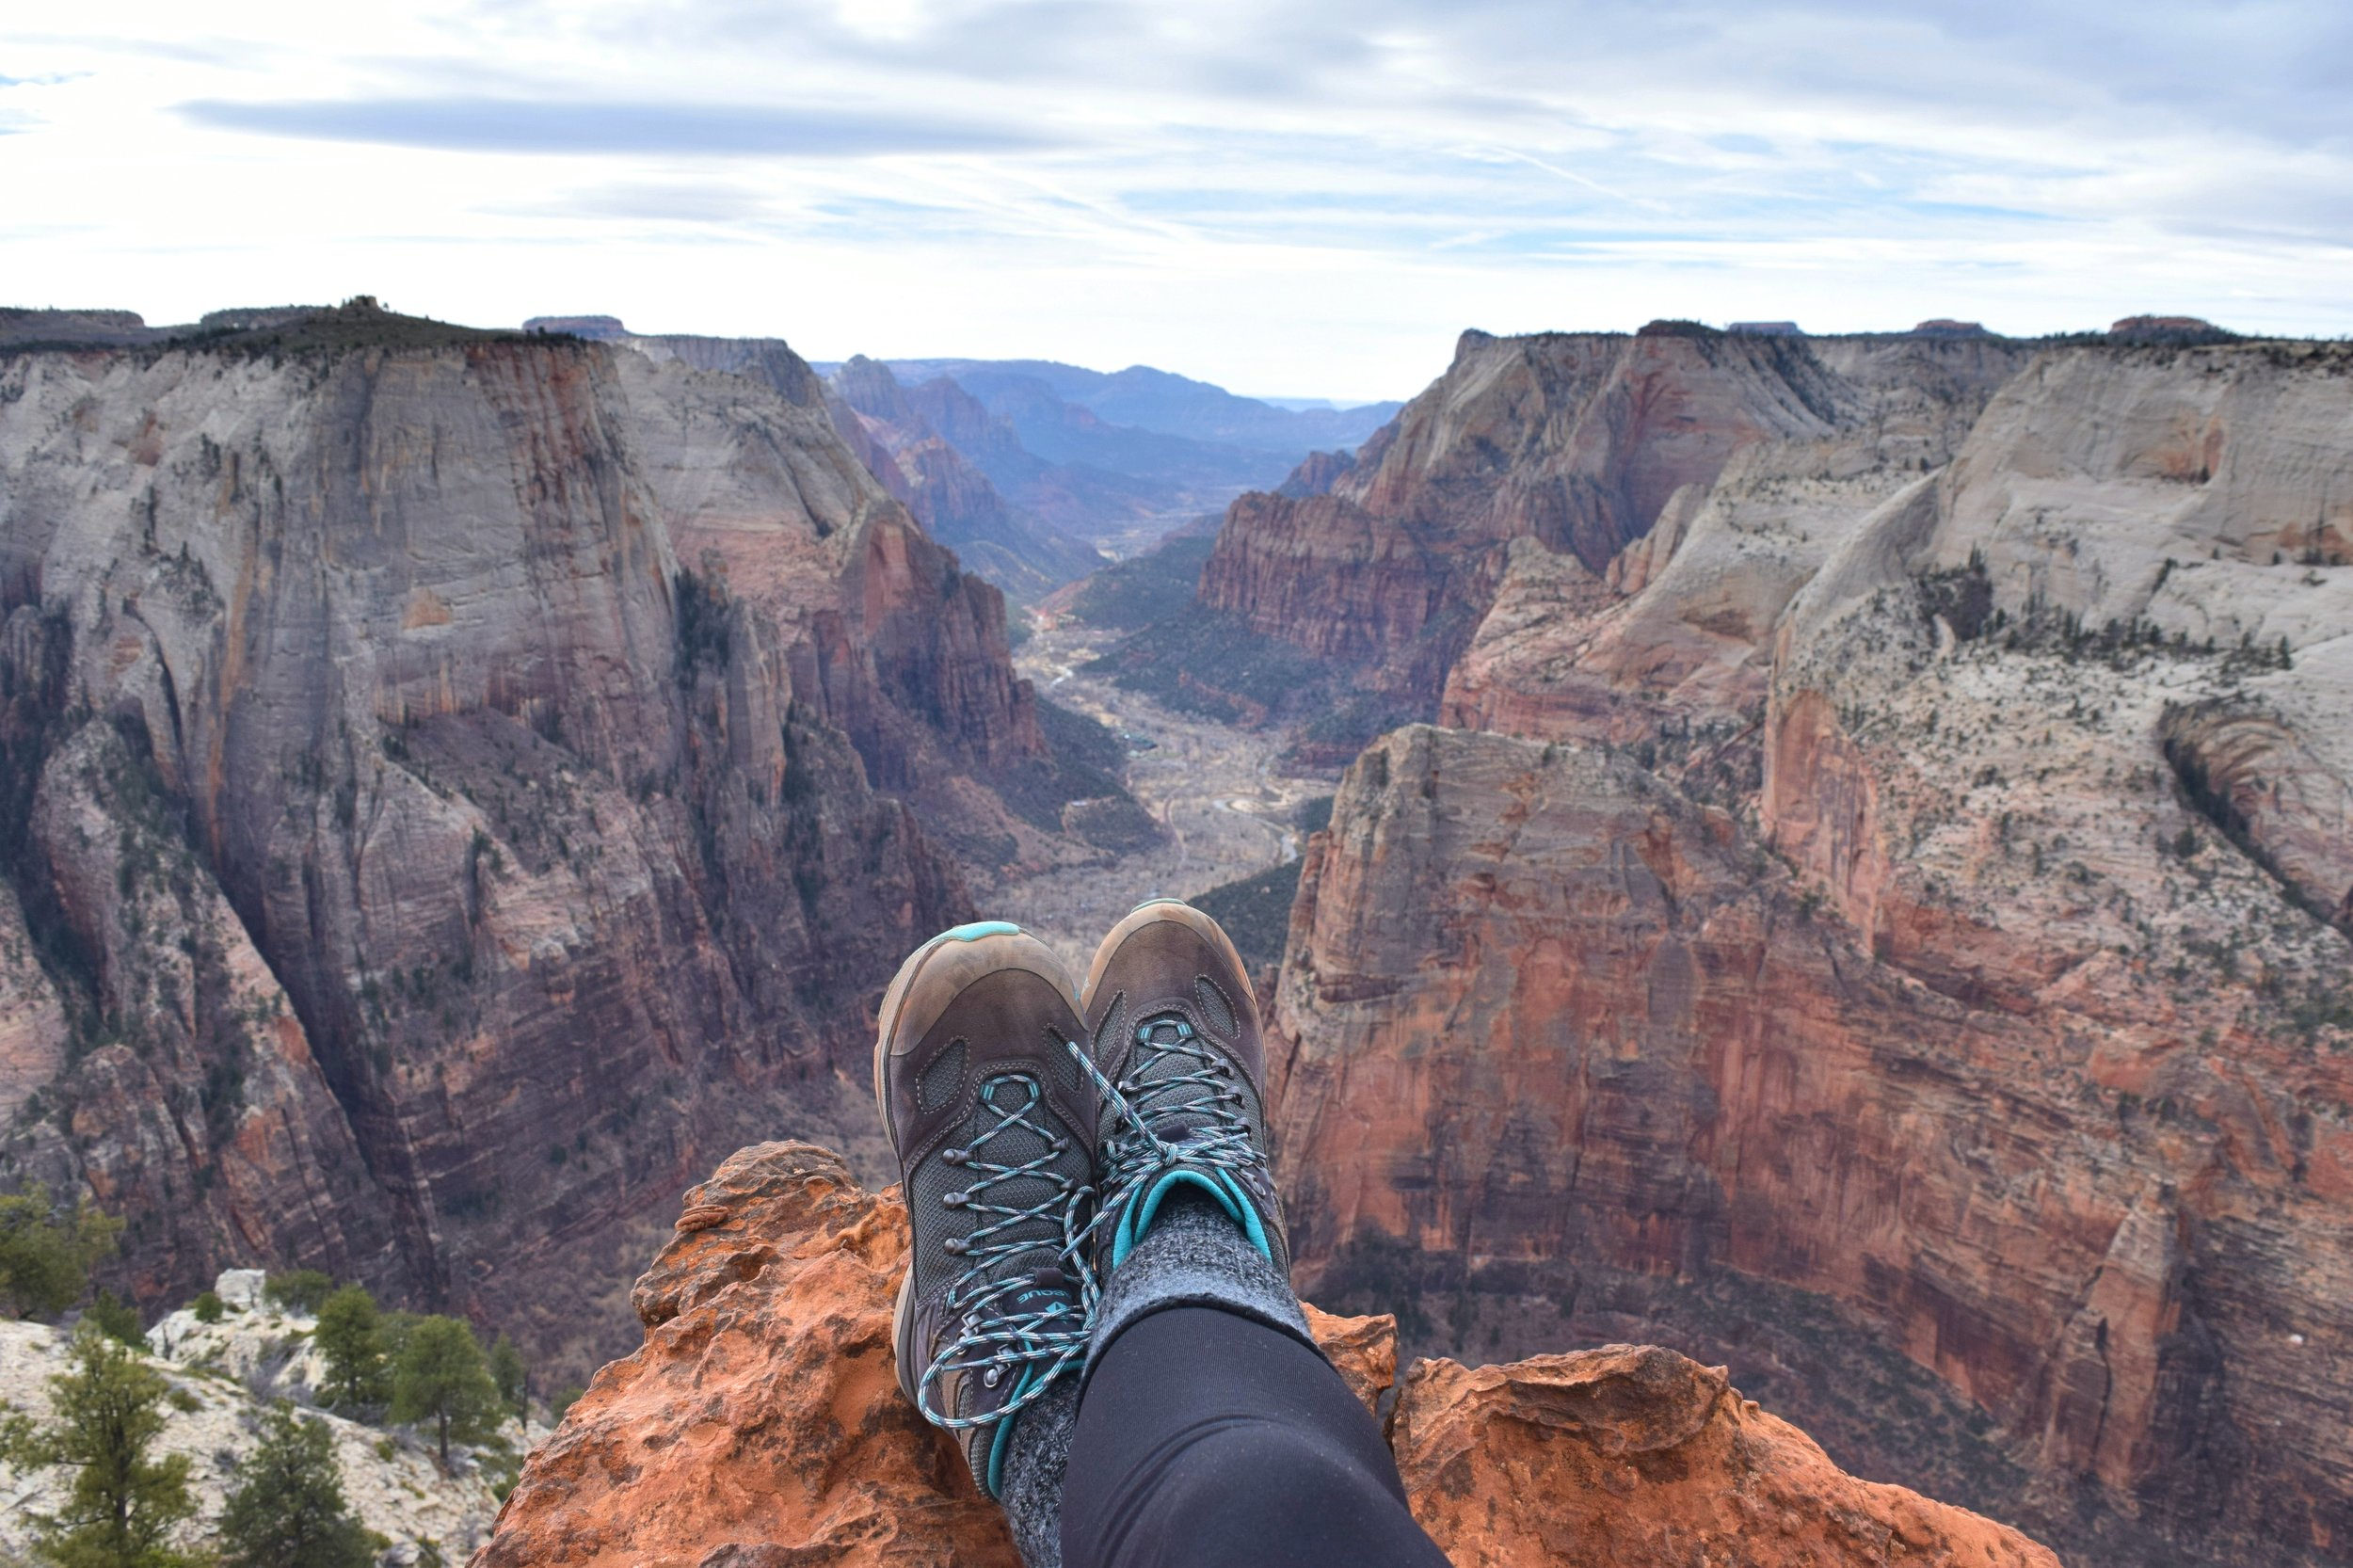 Angels Landing is right off my right foot in the picture.